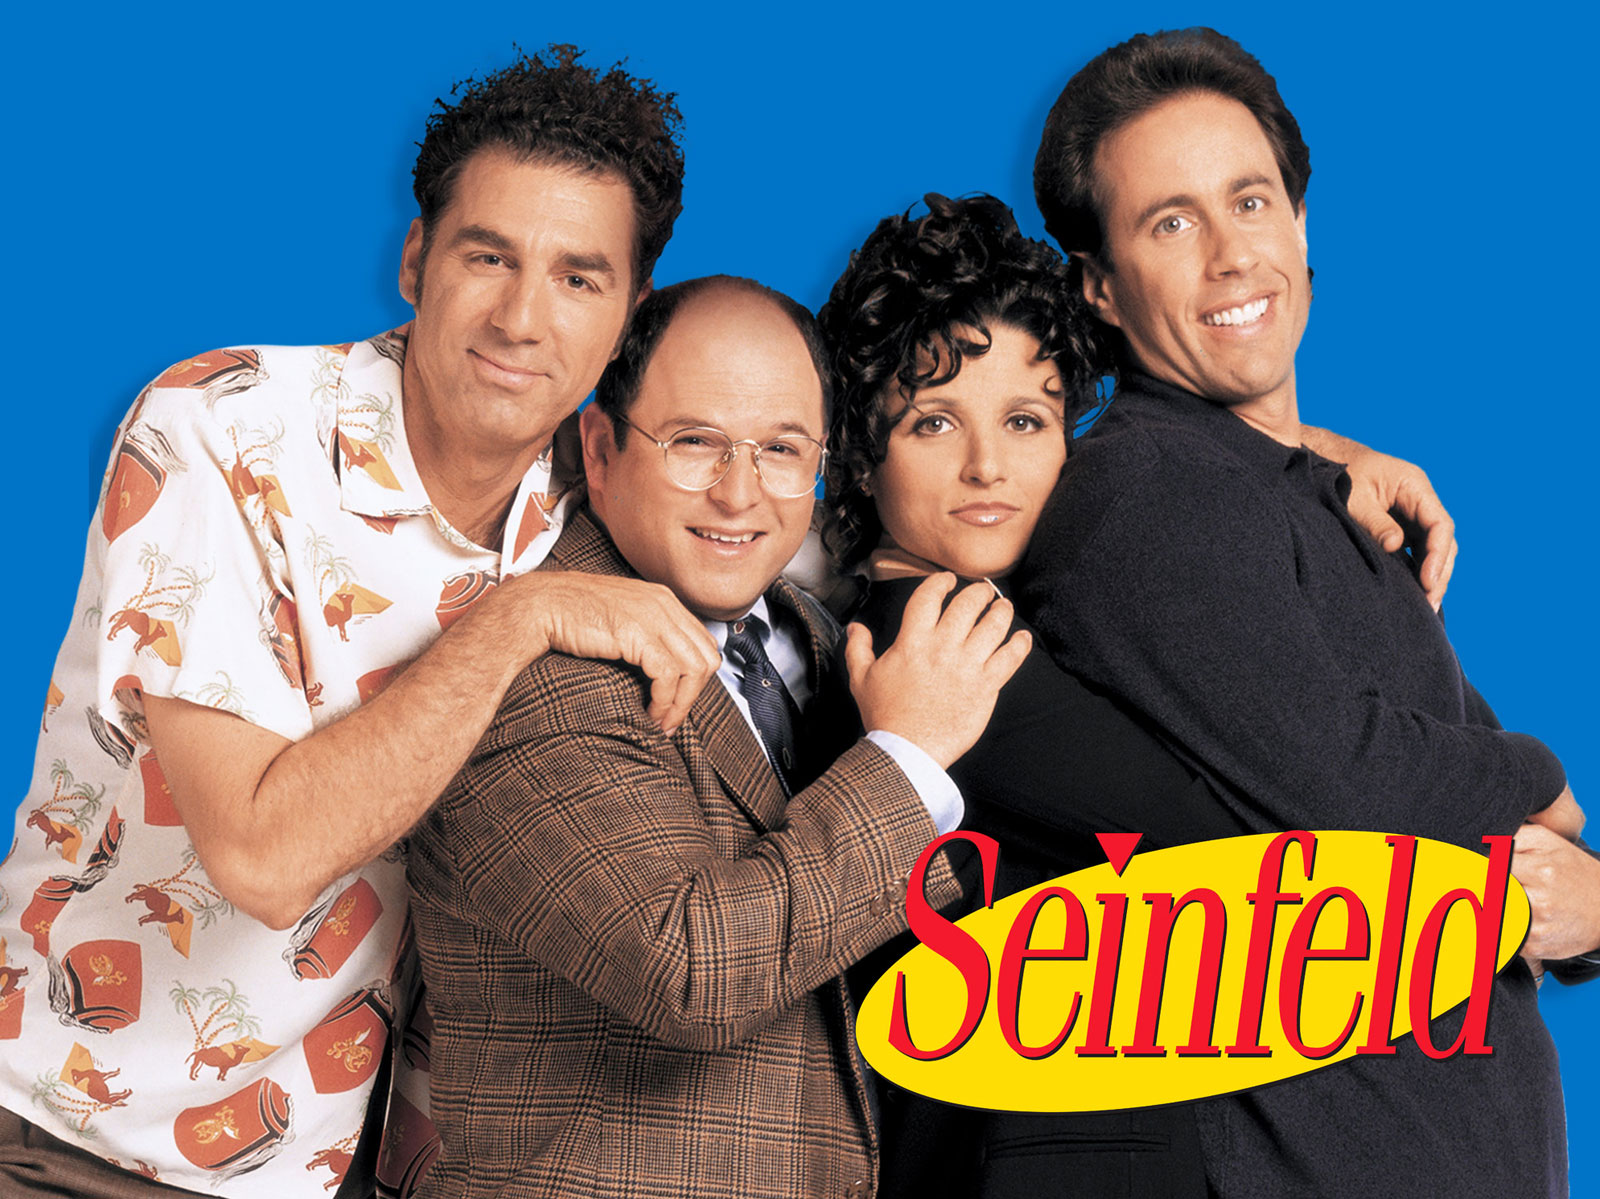 When is Seinfeld coming to Netflix? Will all seasons be available?